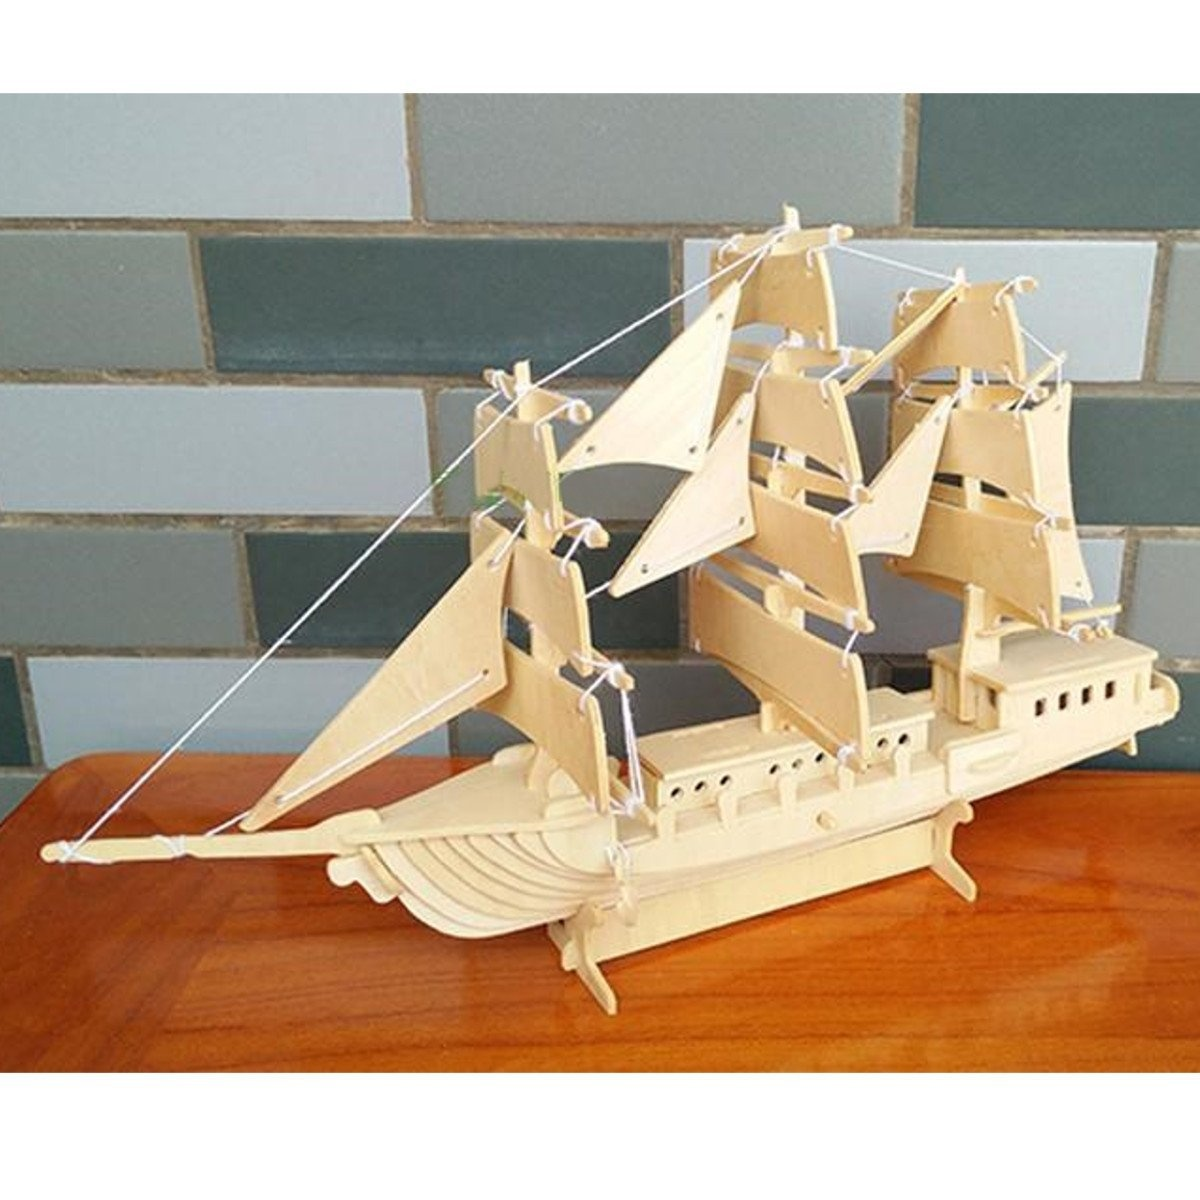 Aissimio Hobby Wooden Ship Models Diy Ship Model Kit Boat Ships Kits Sail Boat Wooden Model Kit Toy Boat Model Building Kit Model Kit Decoration Toy